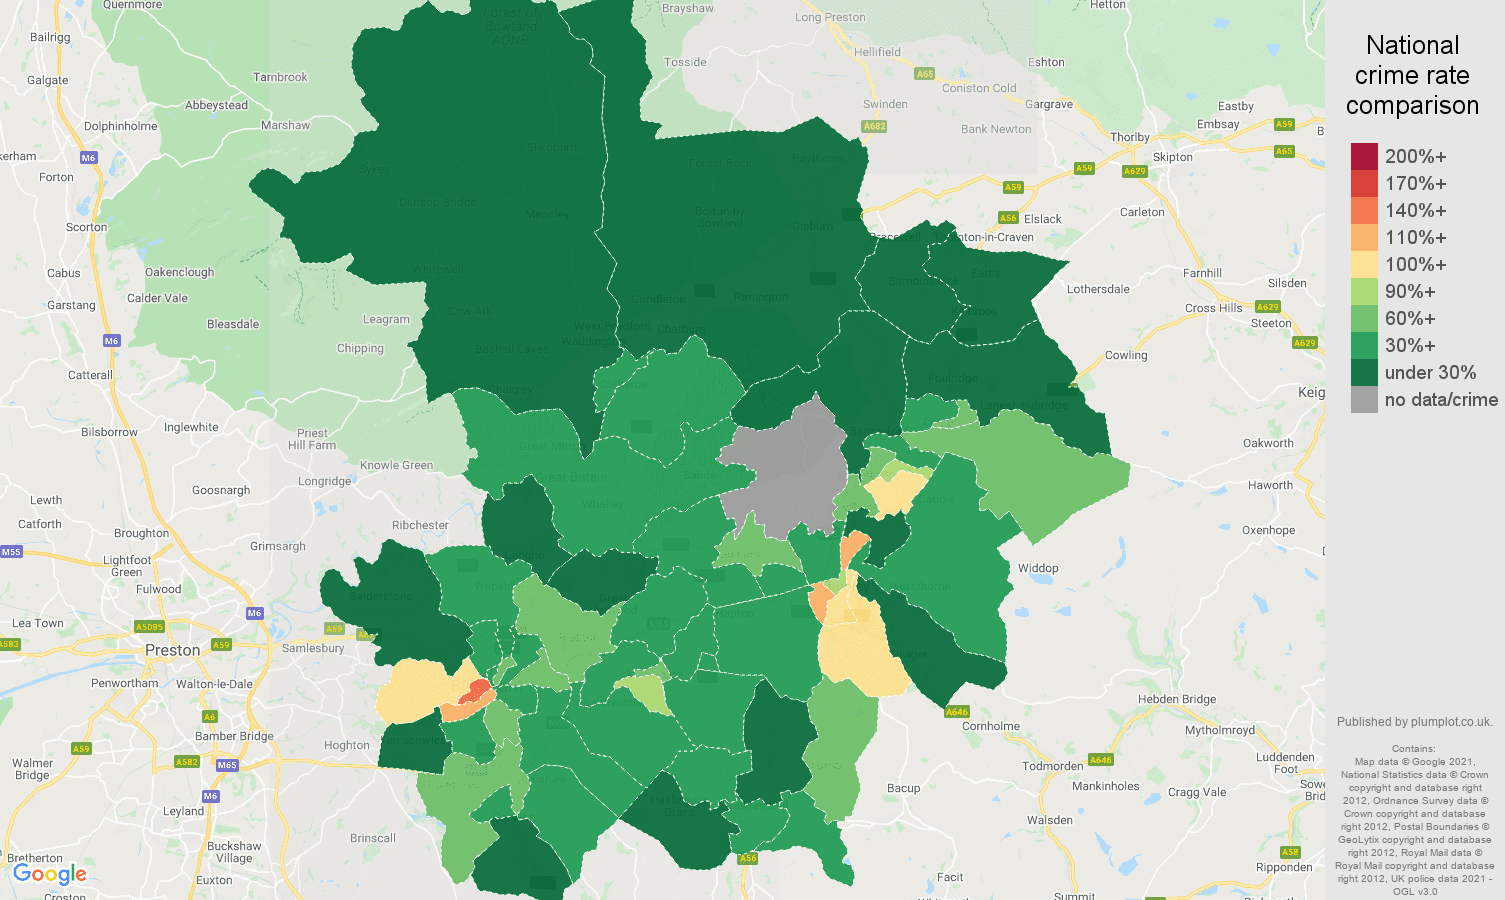 Blackburn drugs crime rate comparison map